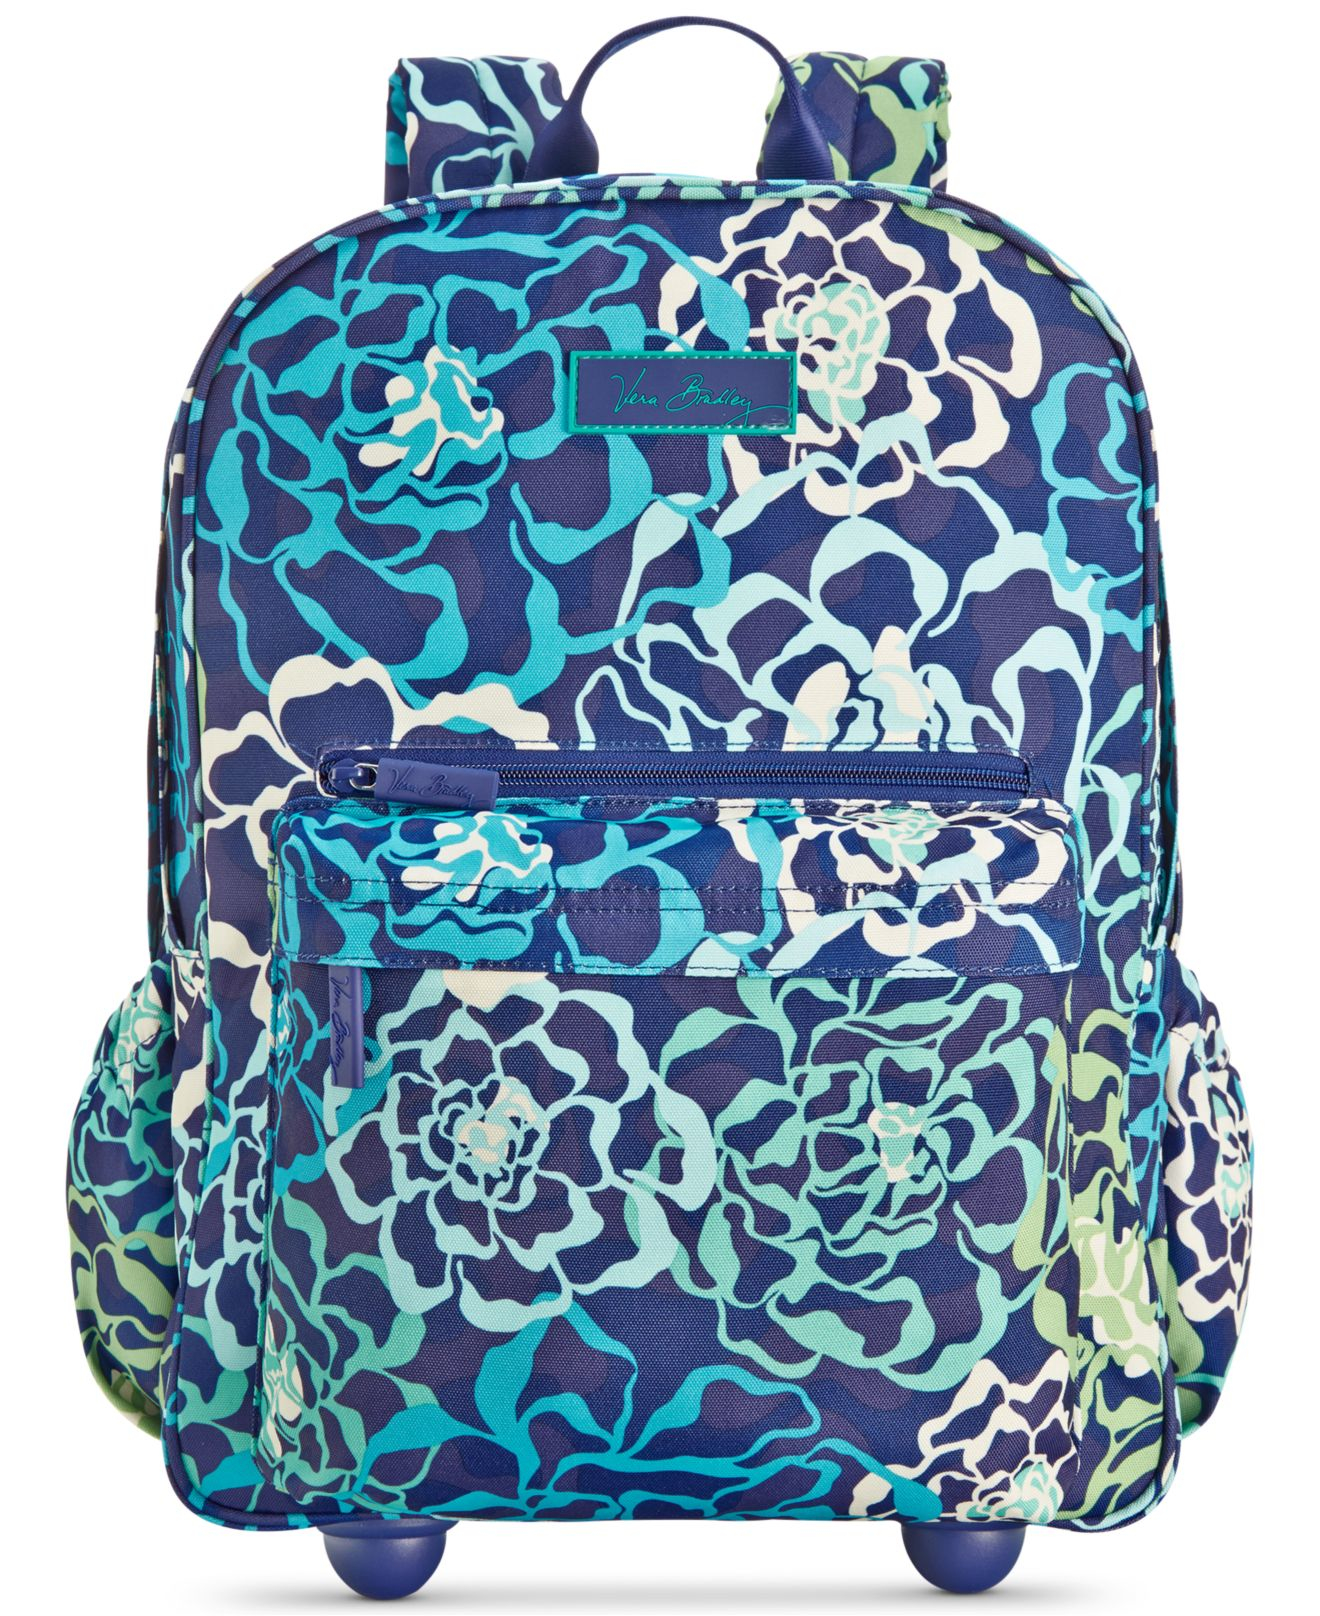 Blue Rolling Backpacks - Crazy Backpacks